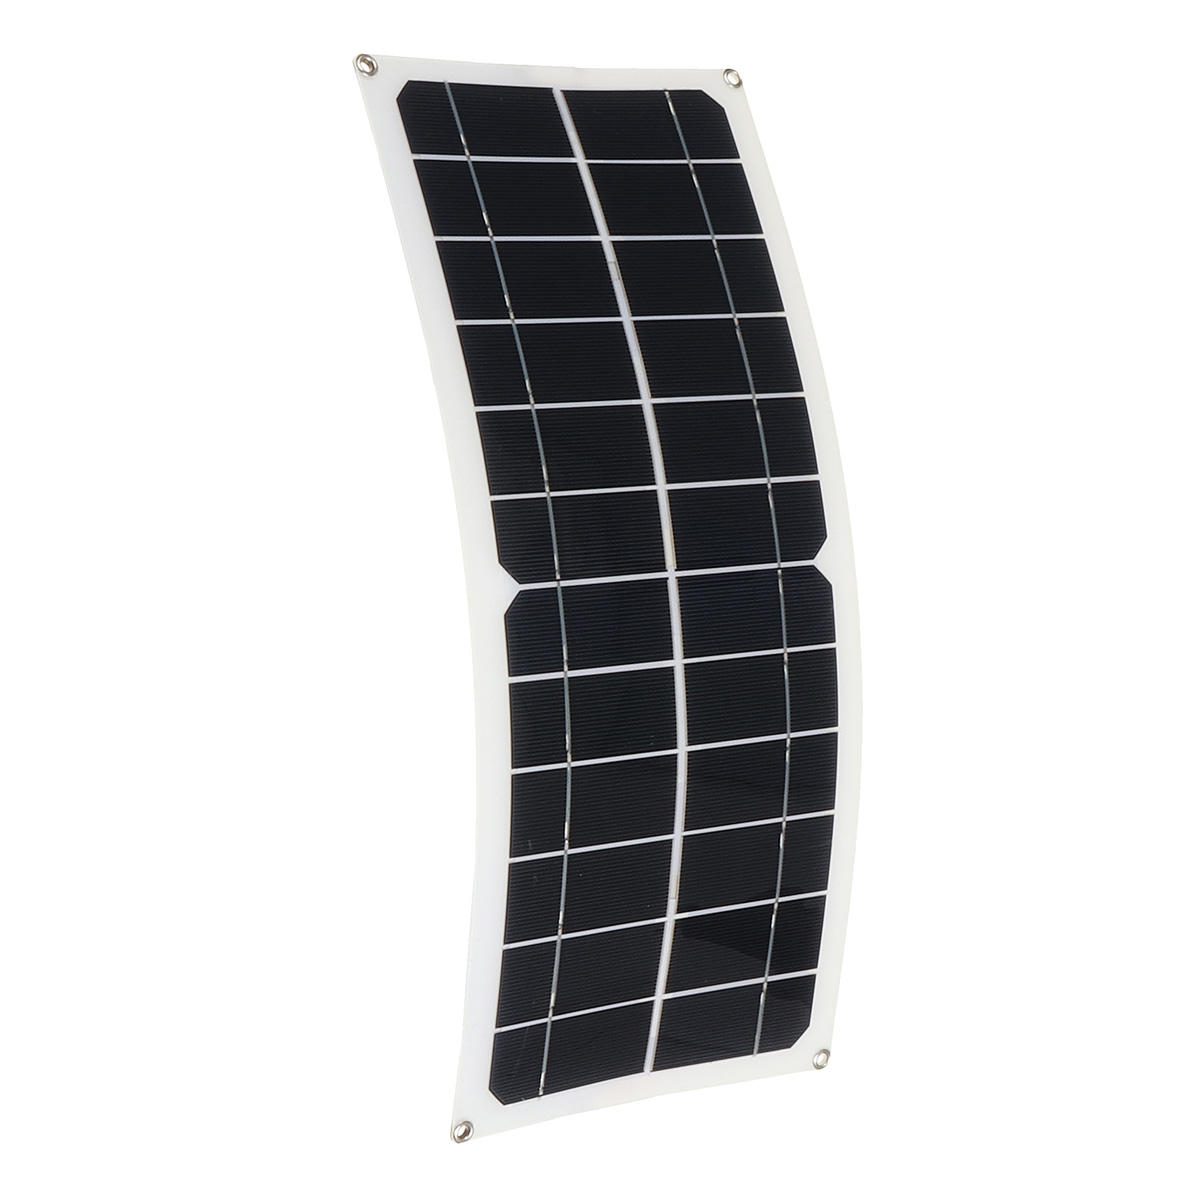 Efficient Solar Powered System 40W Dual USB Ports Solar Panel & 2000W Power Inverter & 10A Controller - 2